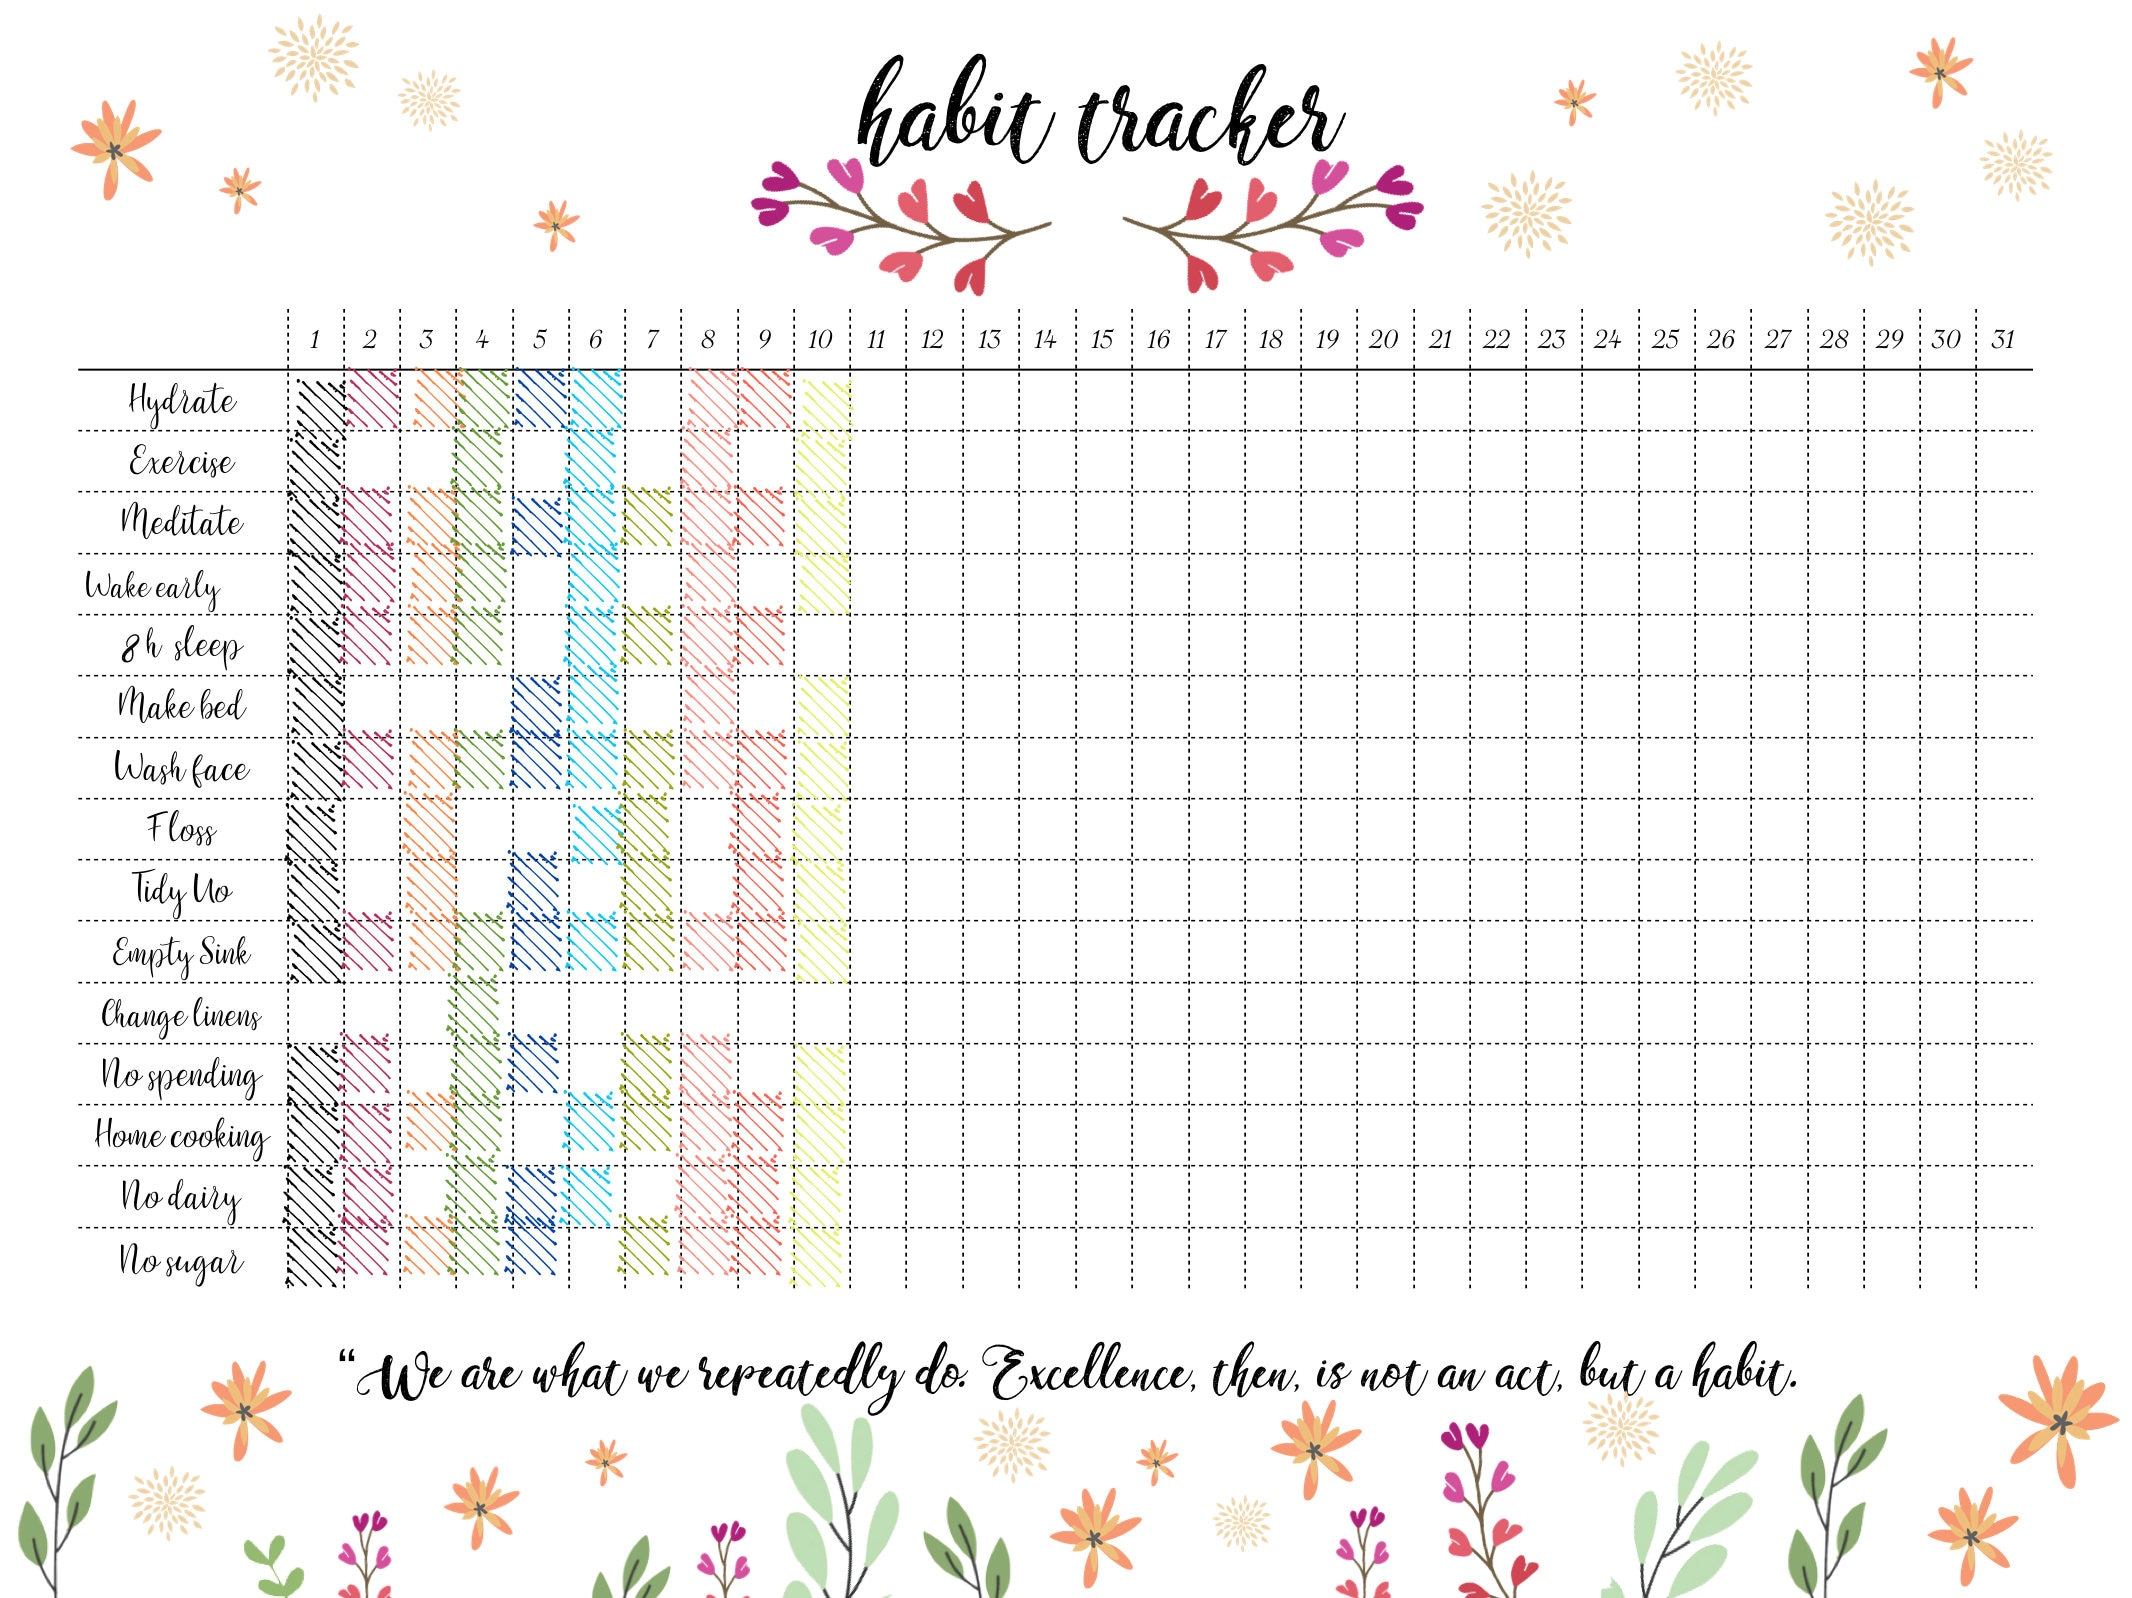 Habit Tracker Bullet Journal track your habits orange